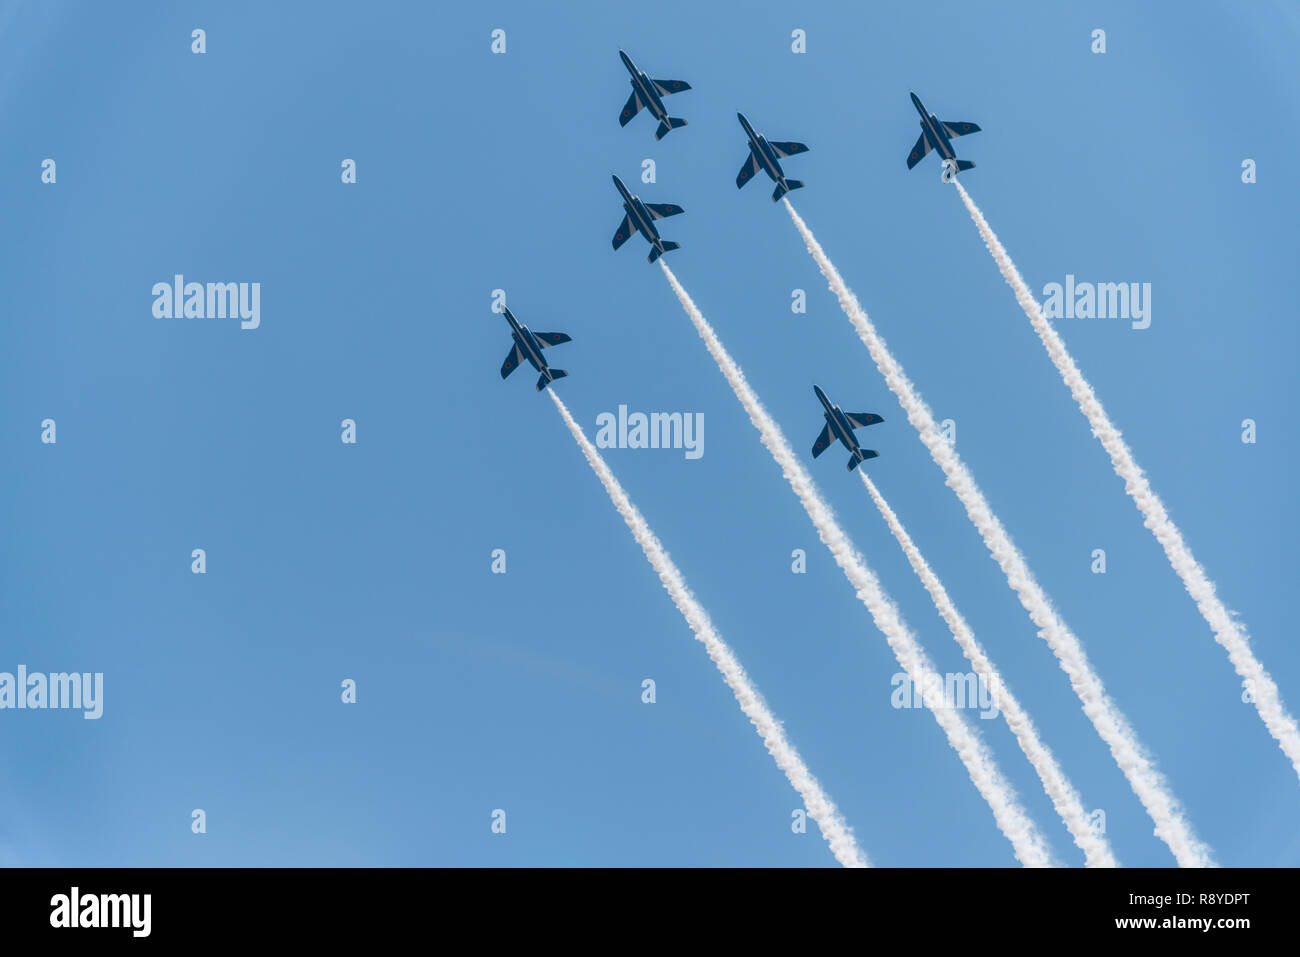 Air acrobatic show by Blue Impulse, Japanese fighter jets - Stock Image